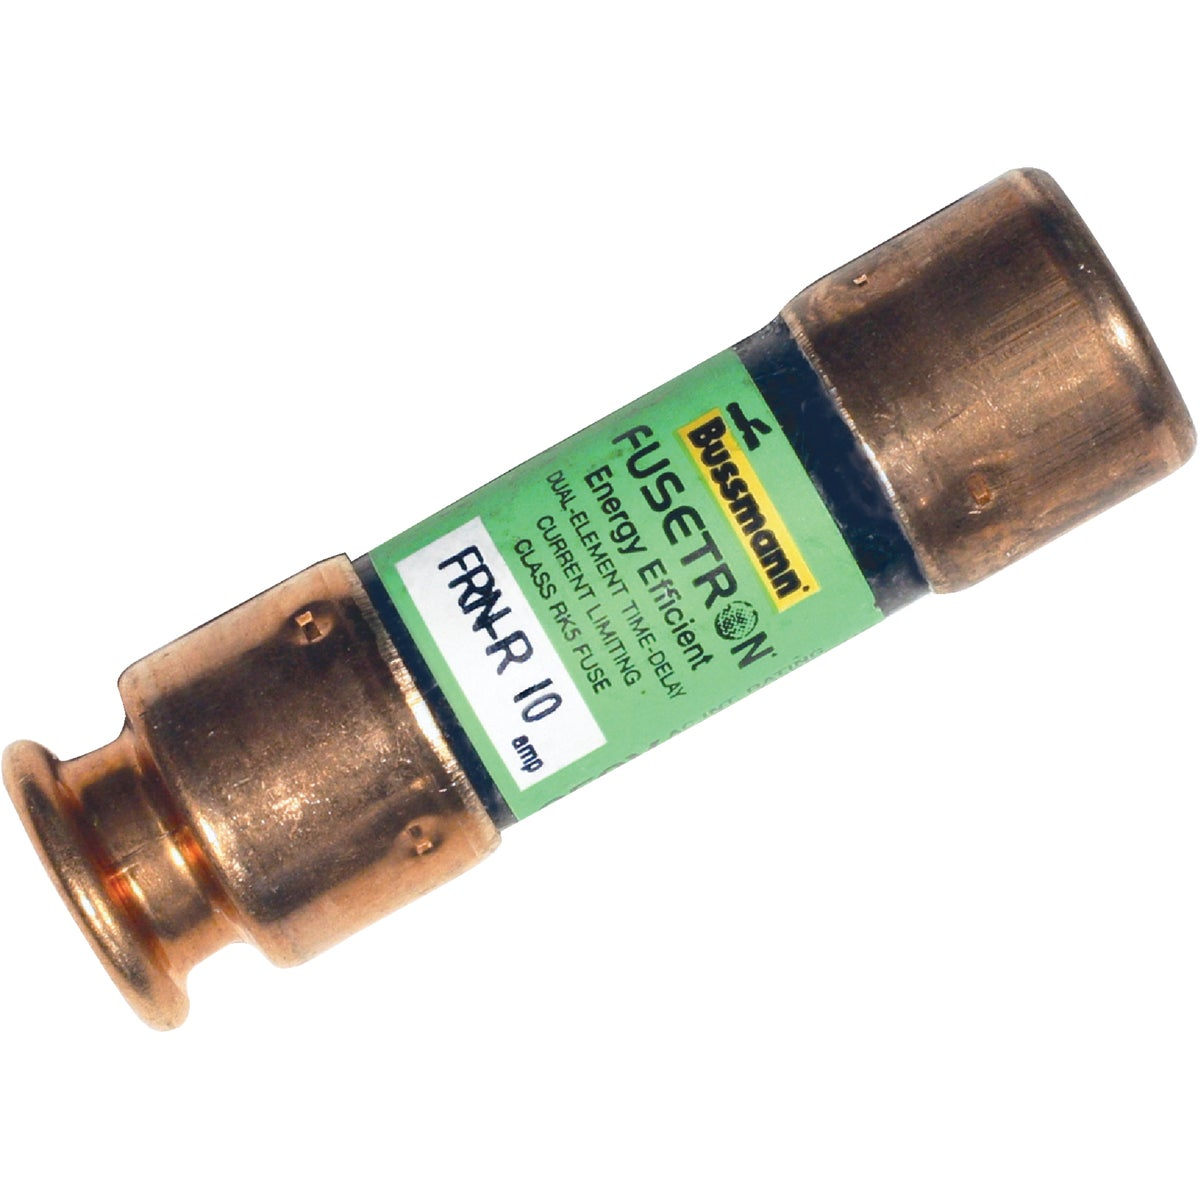 10A 250V CARTRIDGE FUSE - FRN-R-10 by Bussmann Cooper